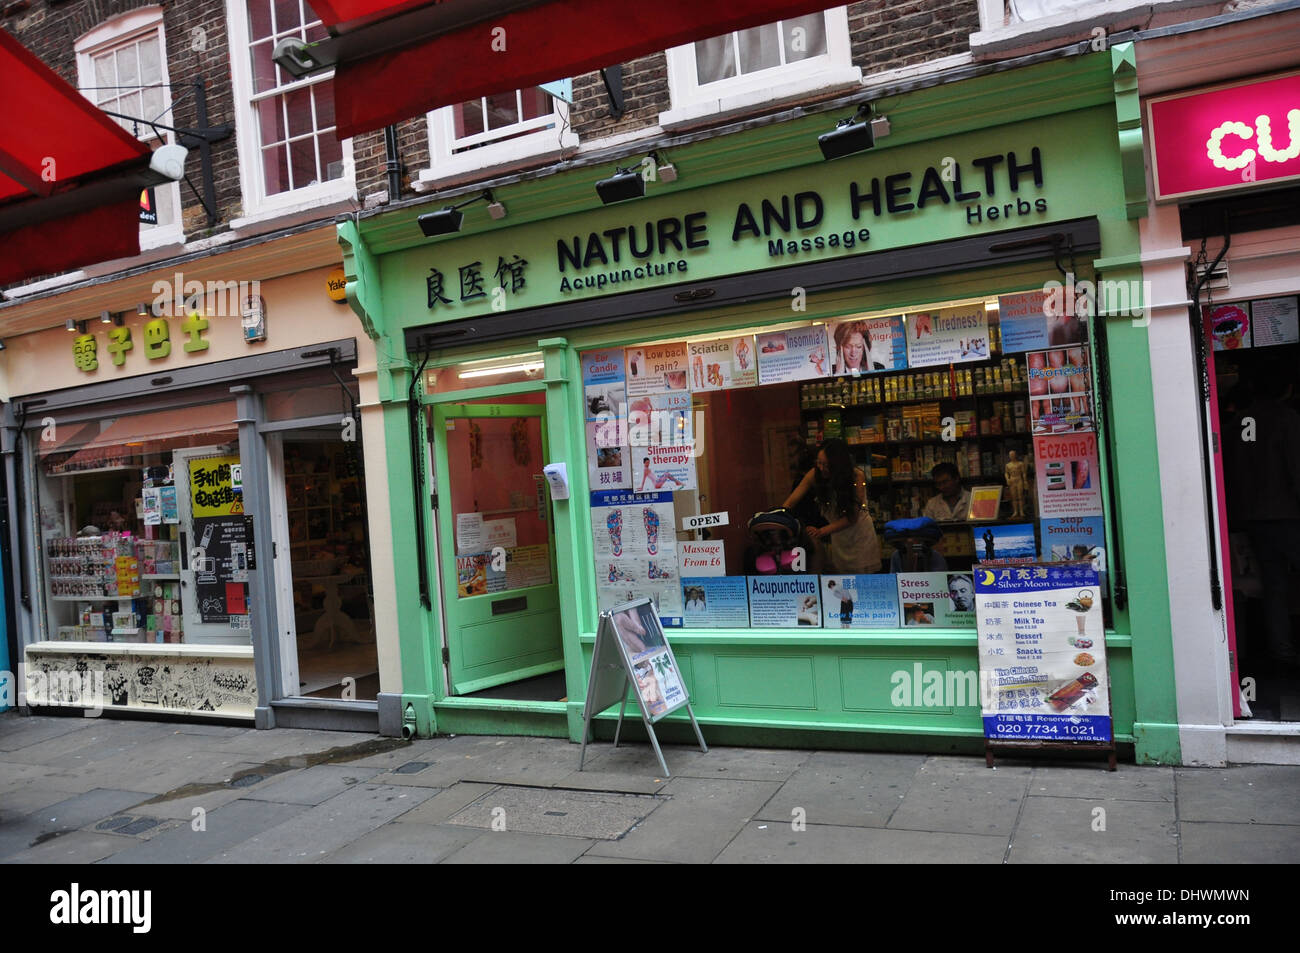 A NATURE & HEALTH SHOP CHINA TOWN LONDON UK - Stock Image